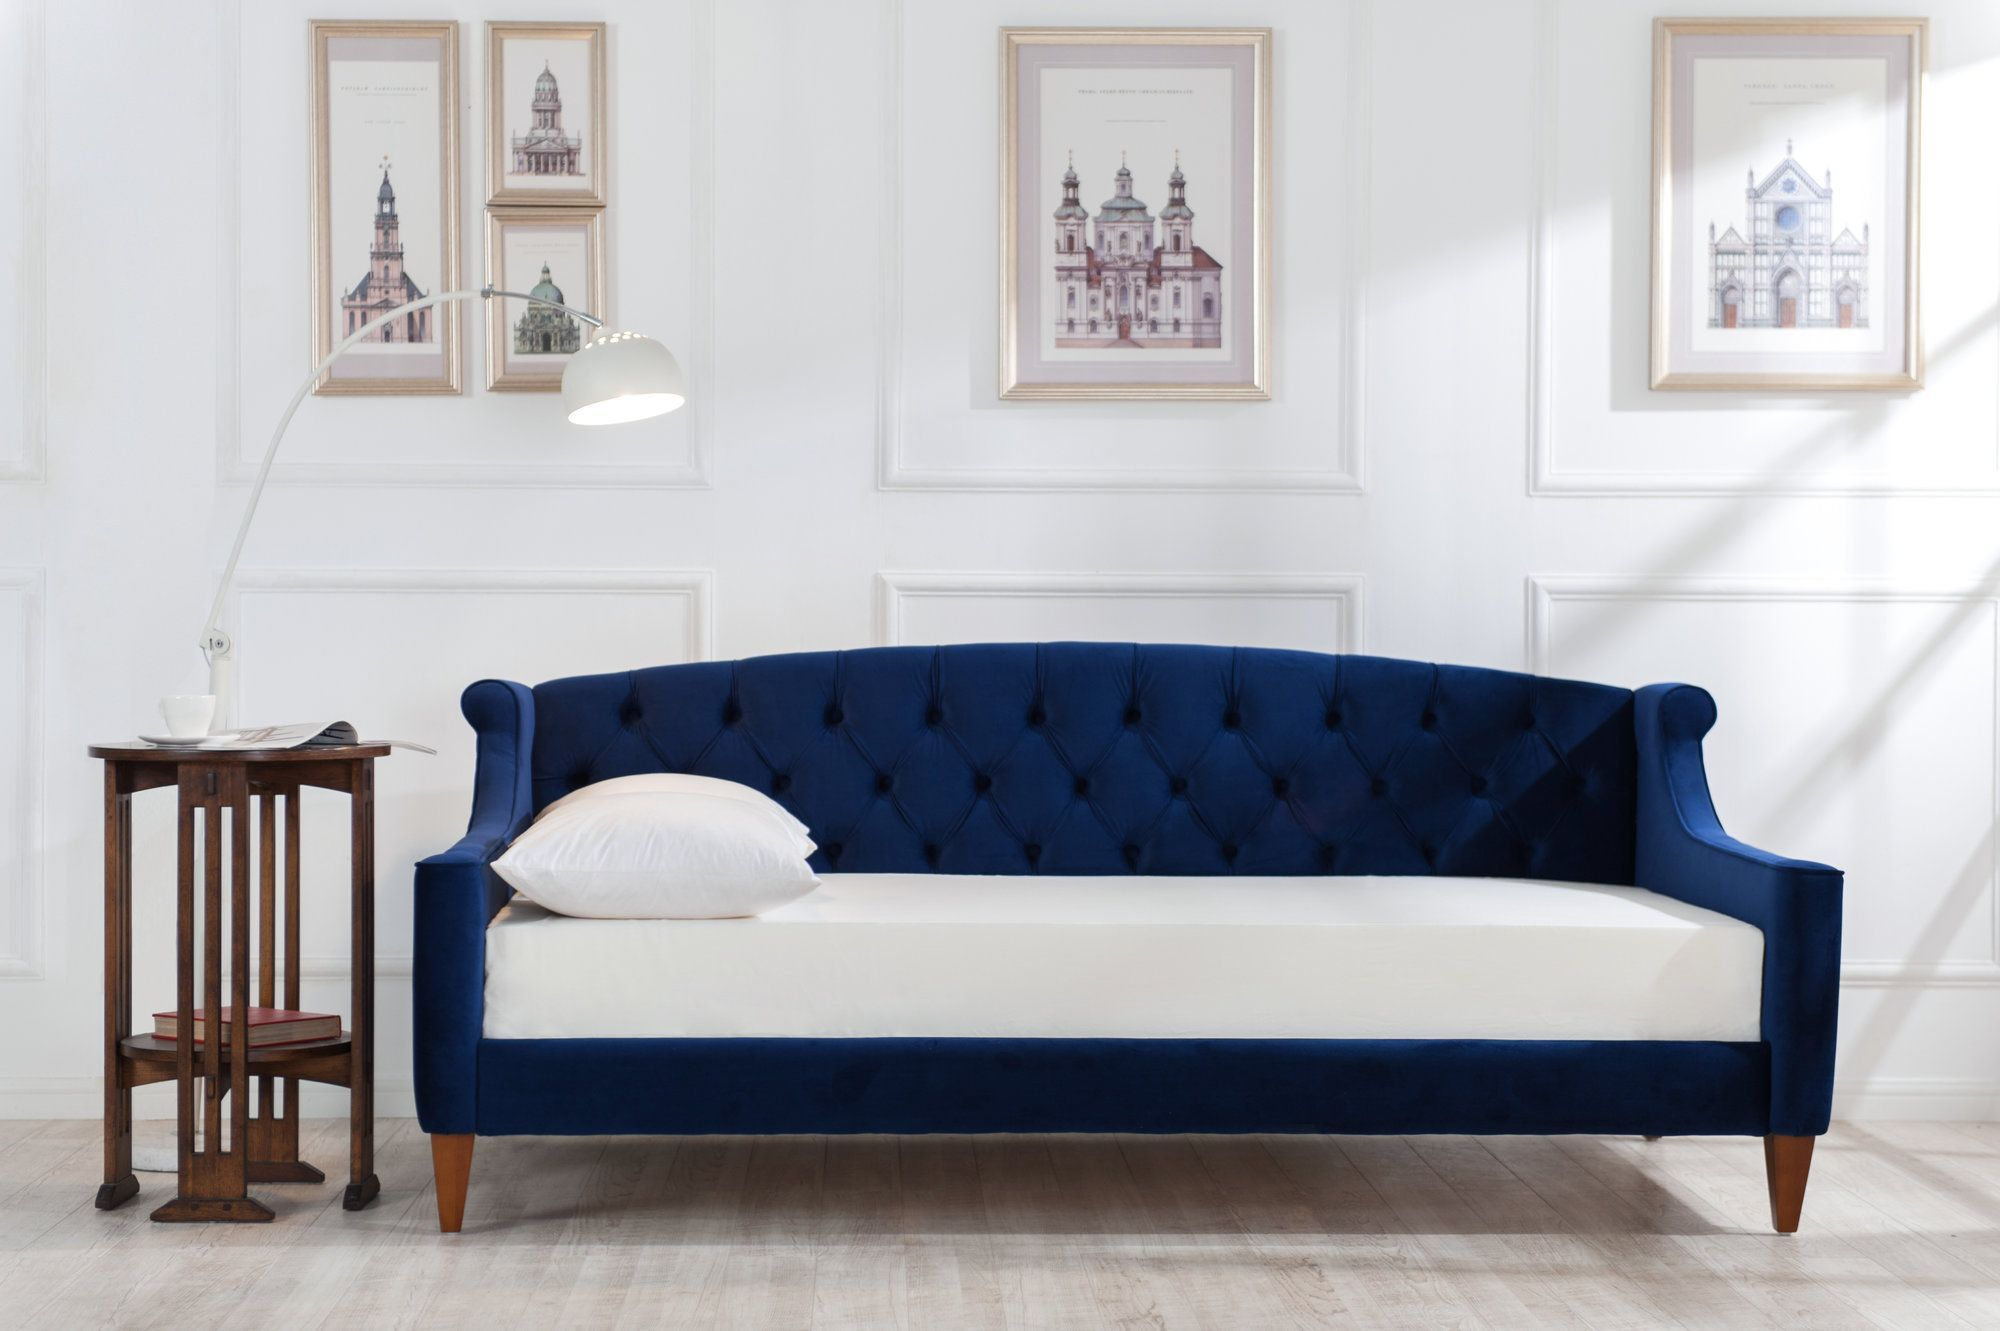 Siona 85 Daybed